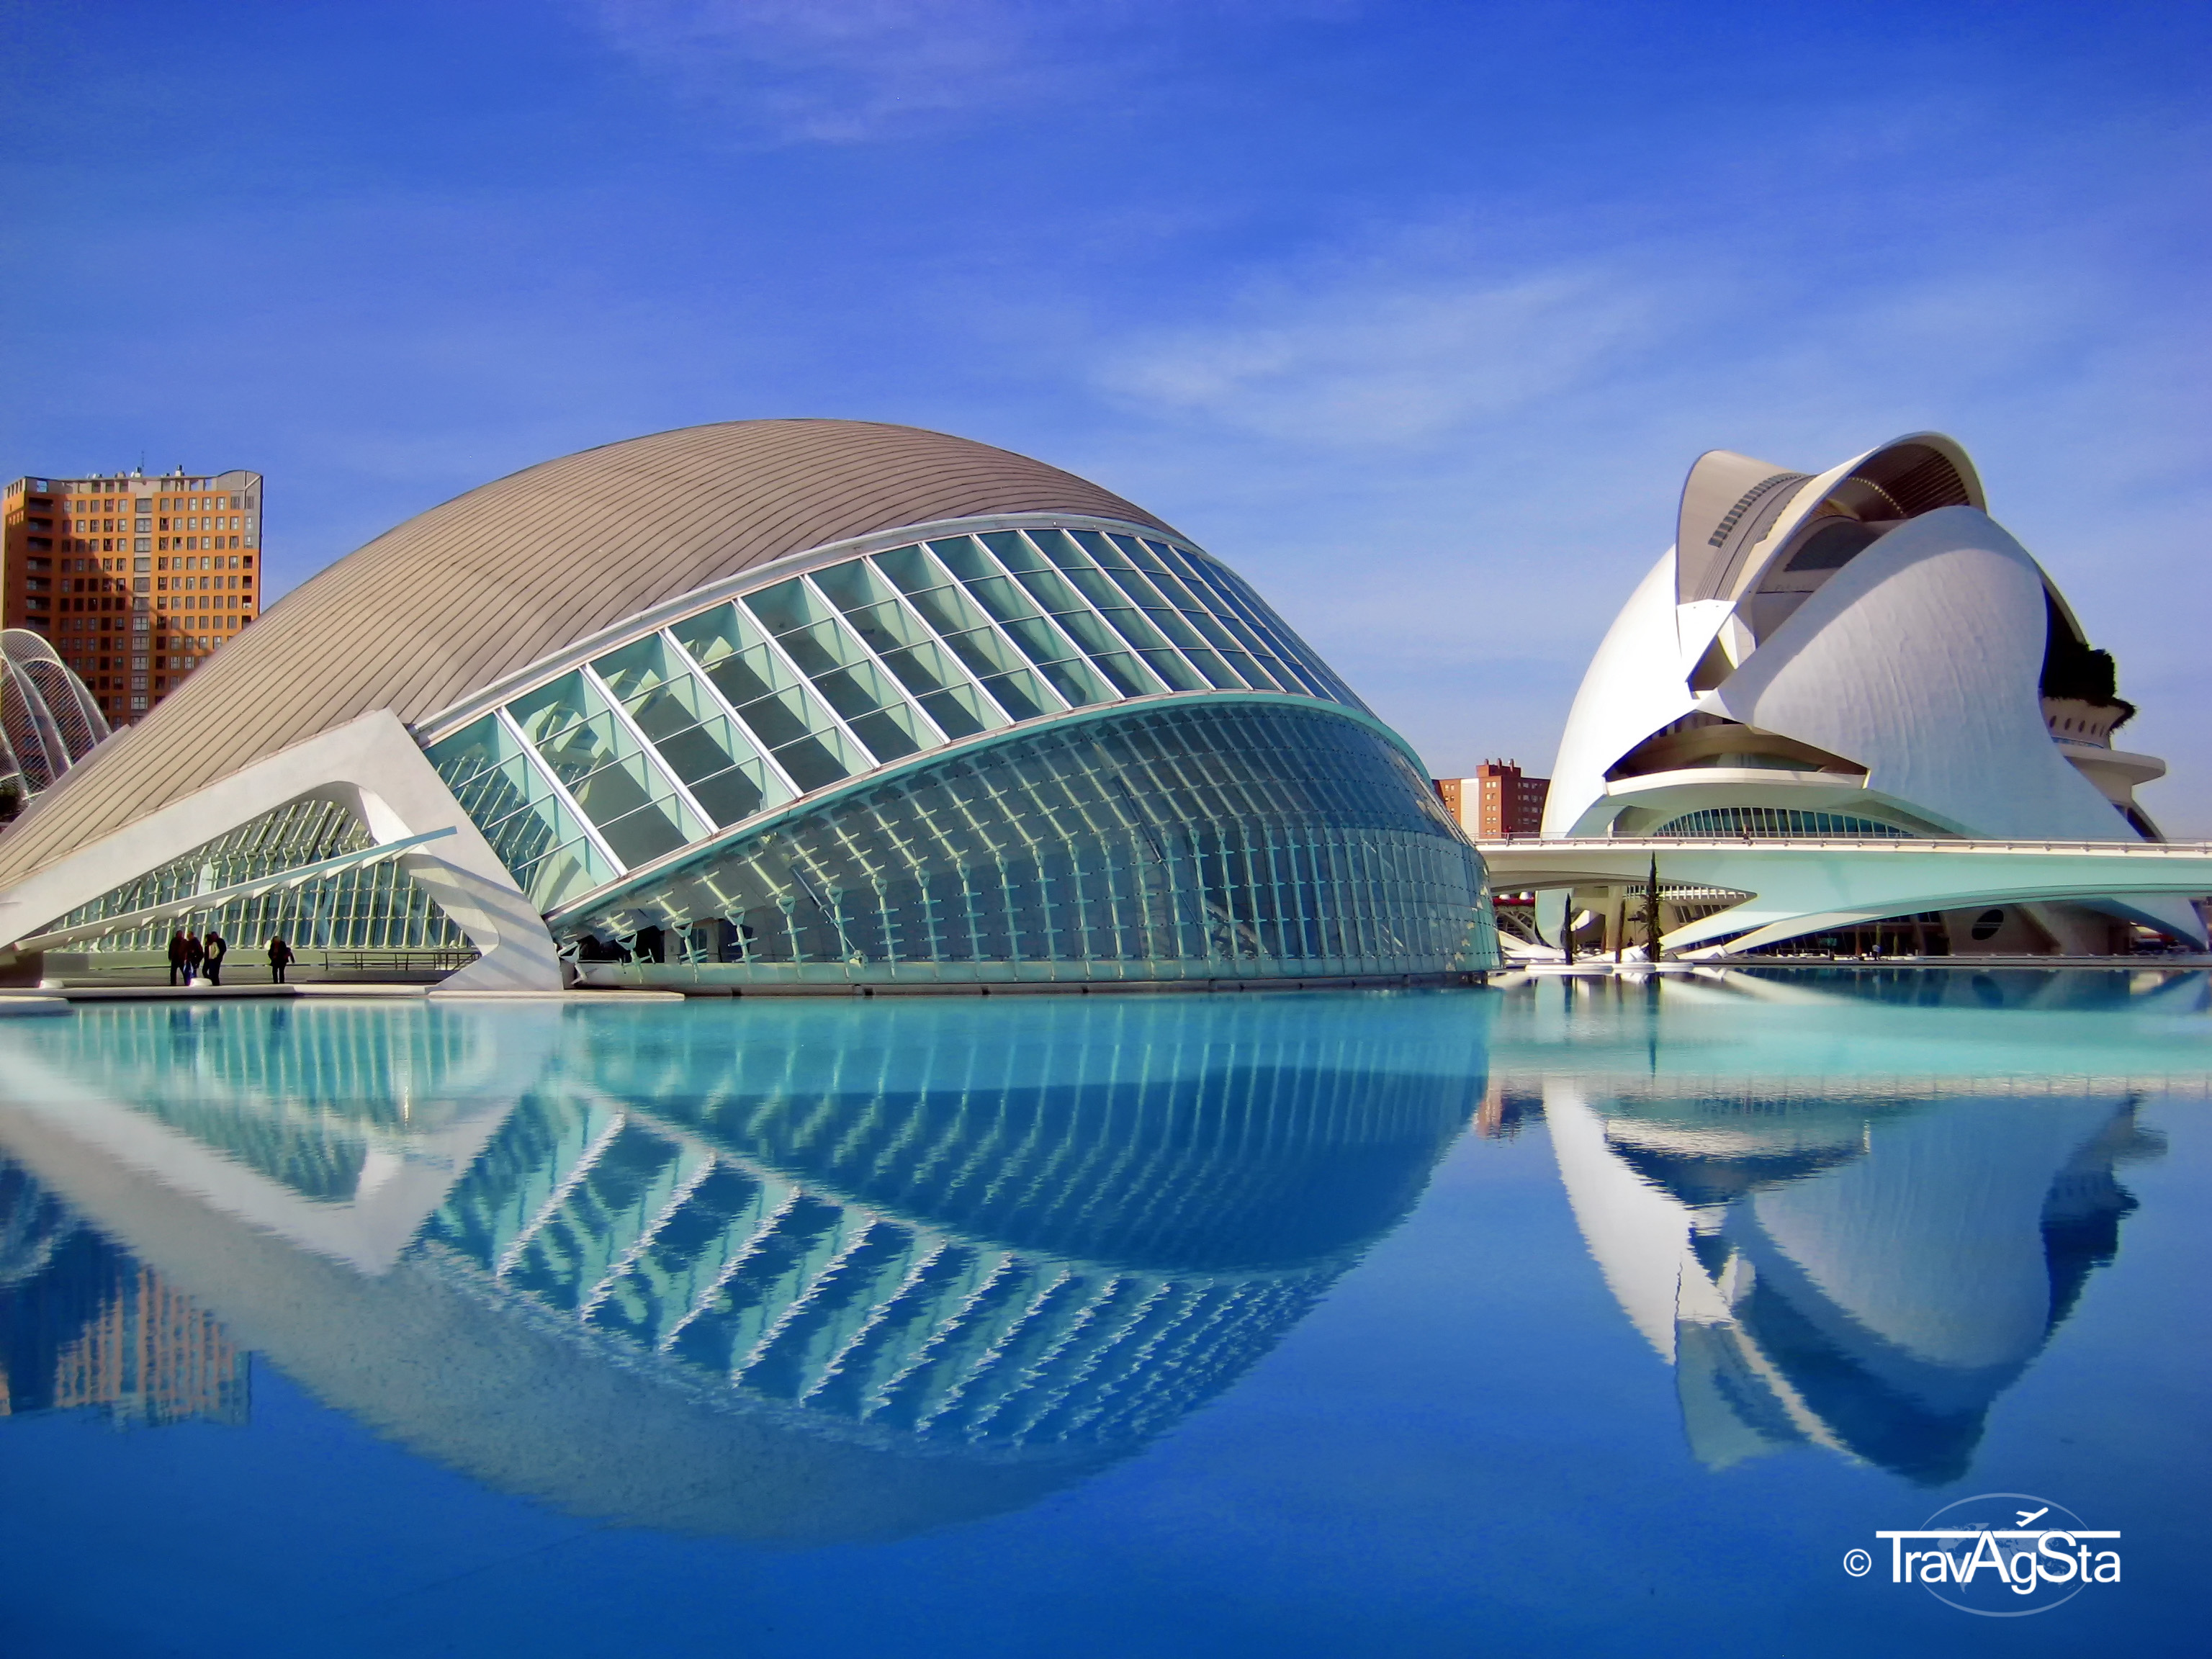 Valencia – So much more than Paella!